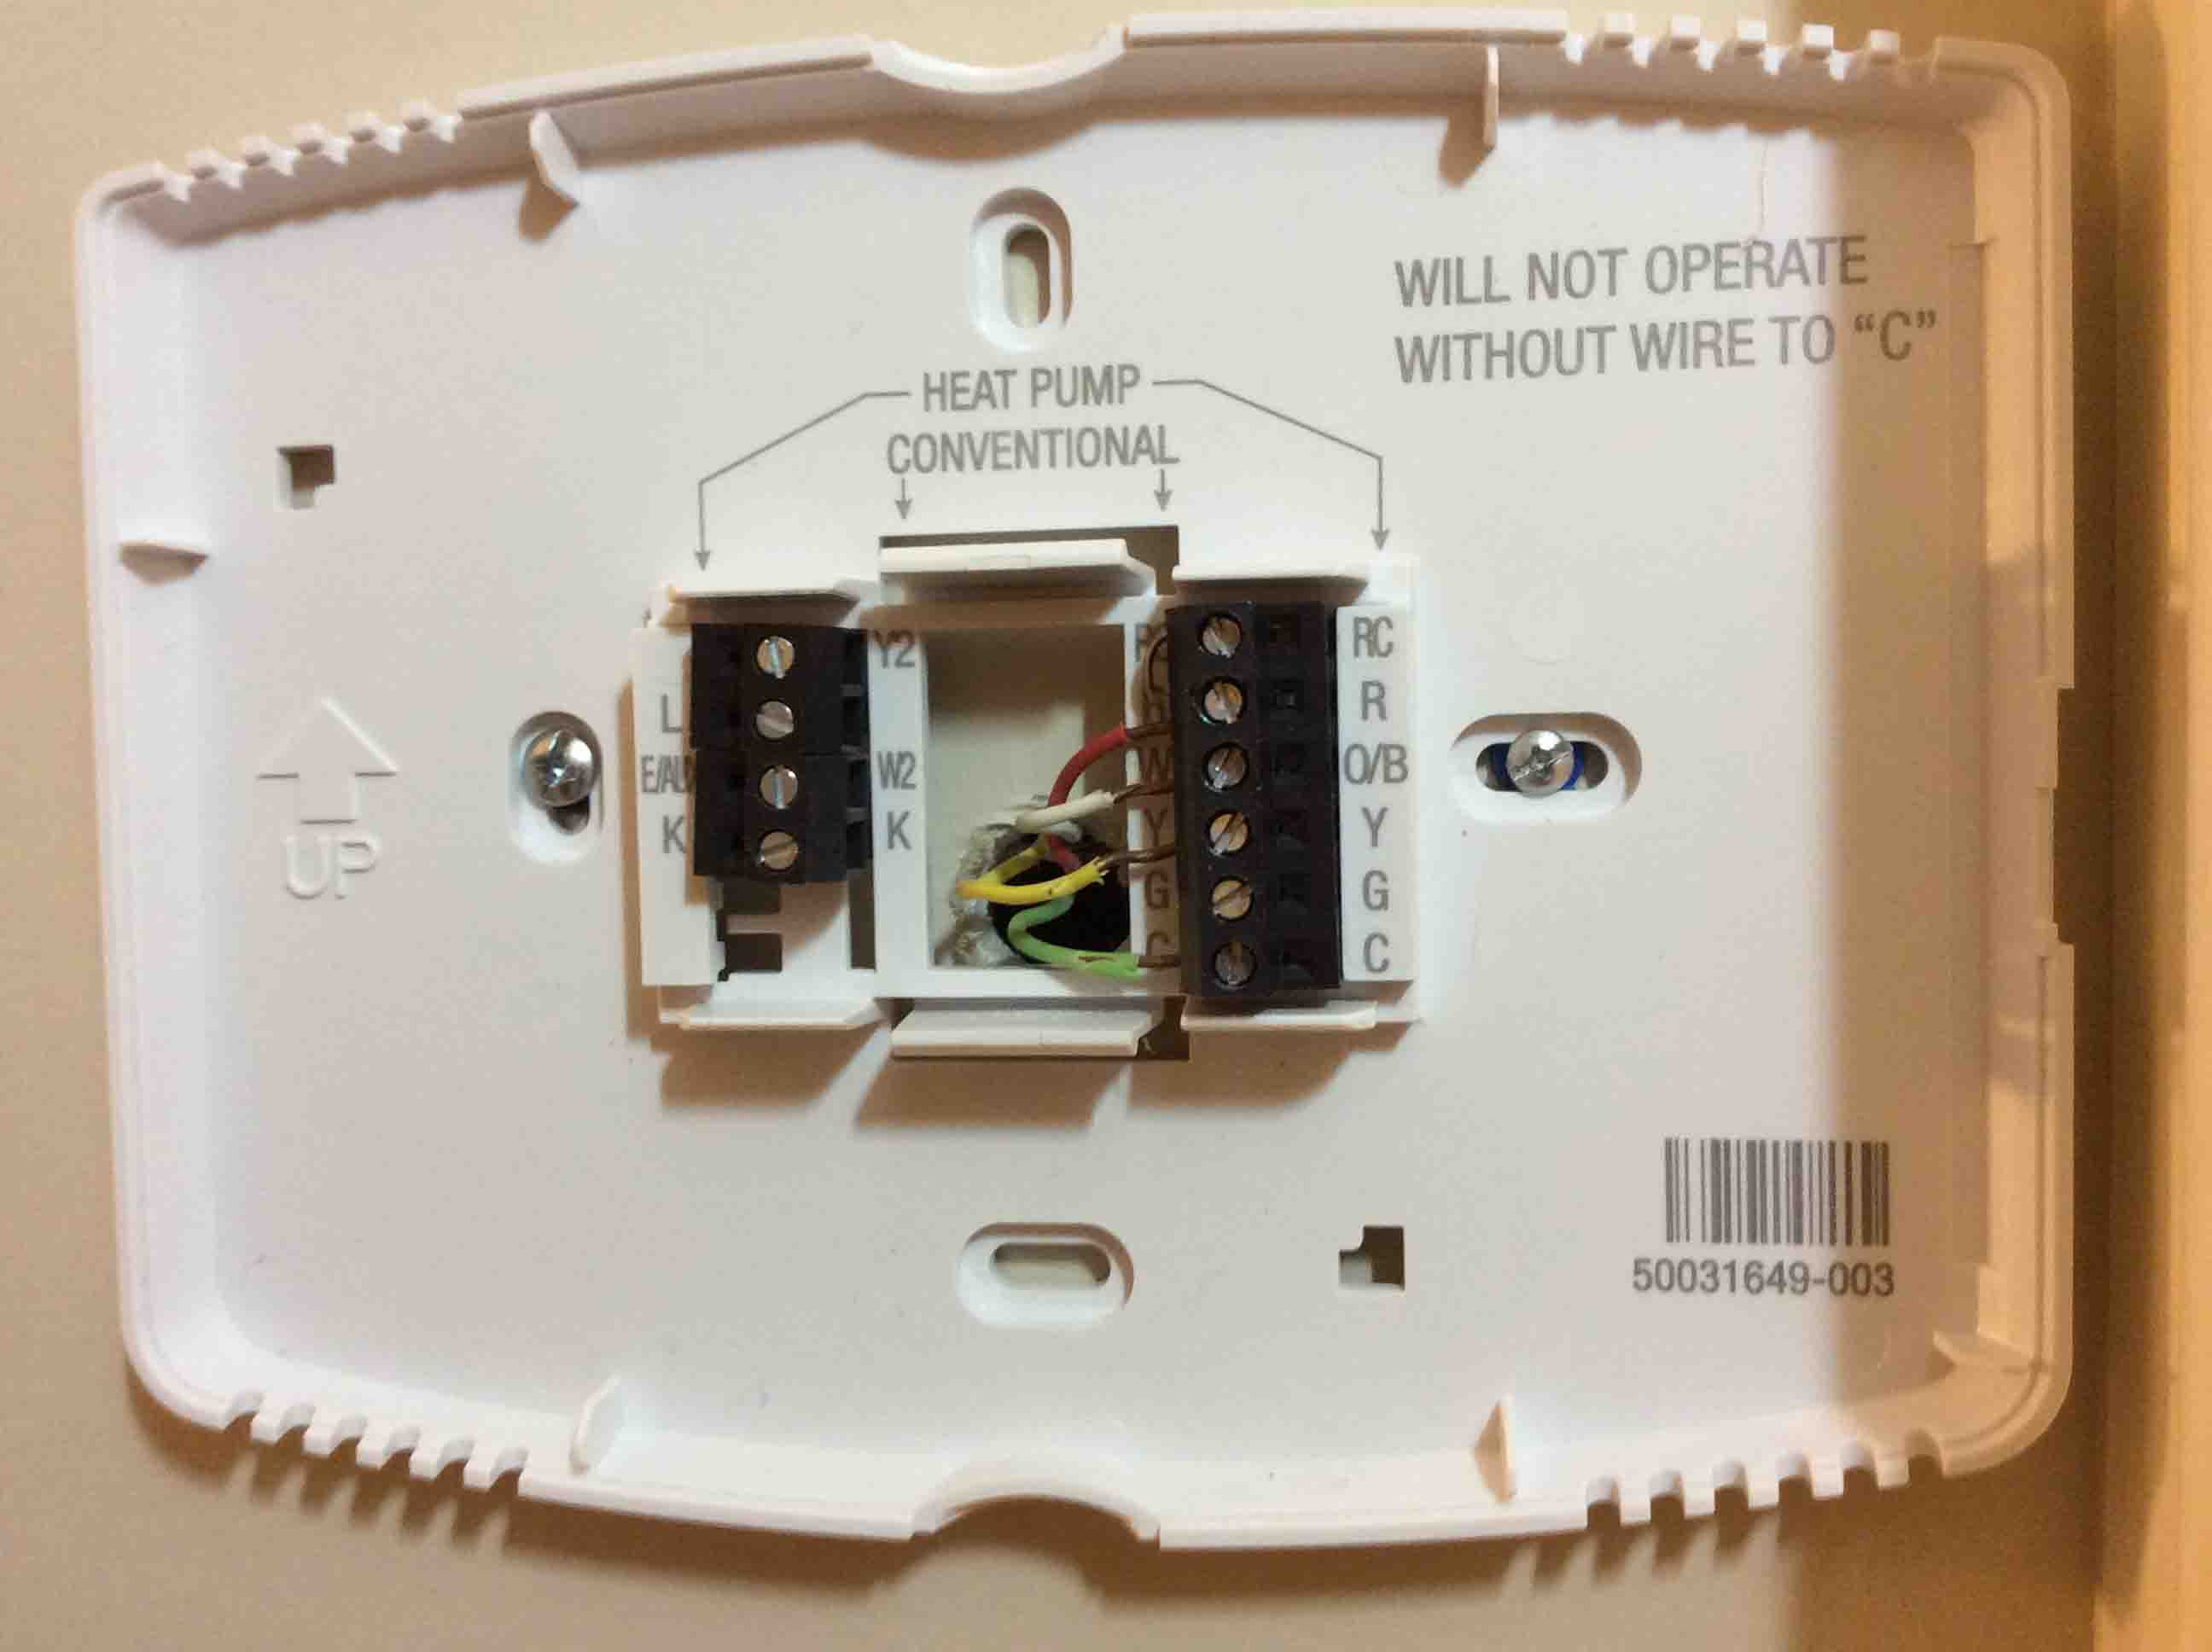 HoneywellWiFiThermostatWallPlateTypicalWiring_001 honeywell smart thermostat wiring instructions rth9580wf tom's honeywell rth9580wf wiring diagram at virtualis.co